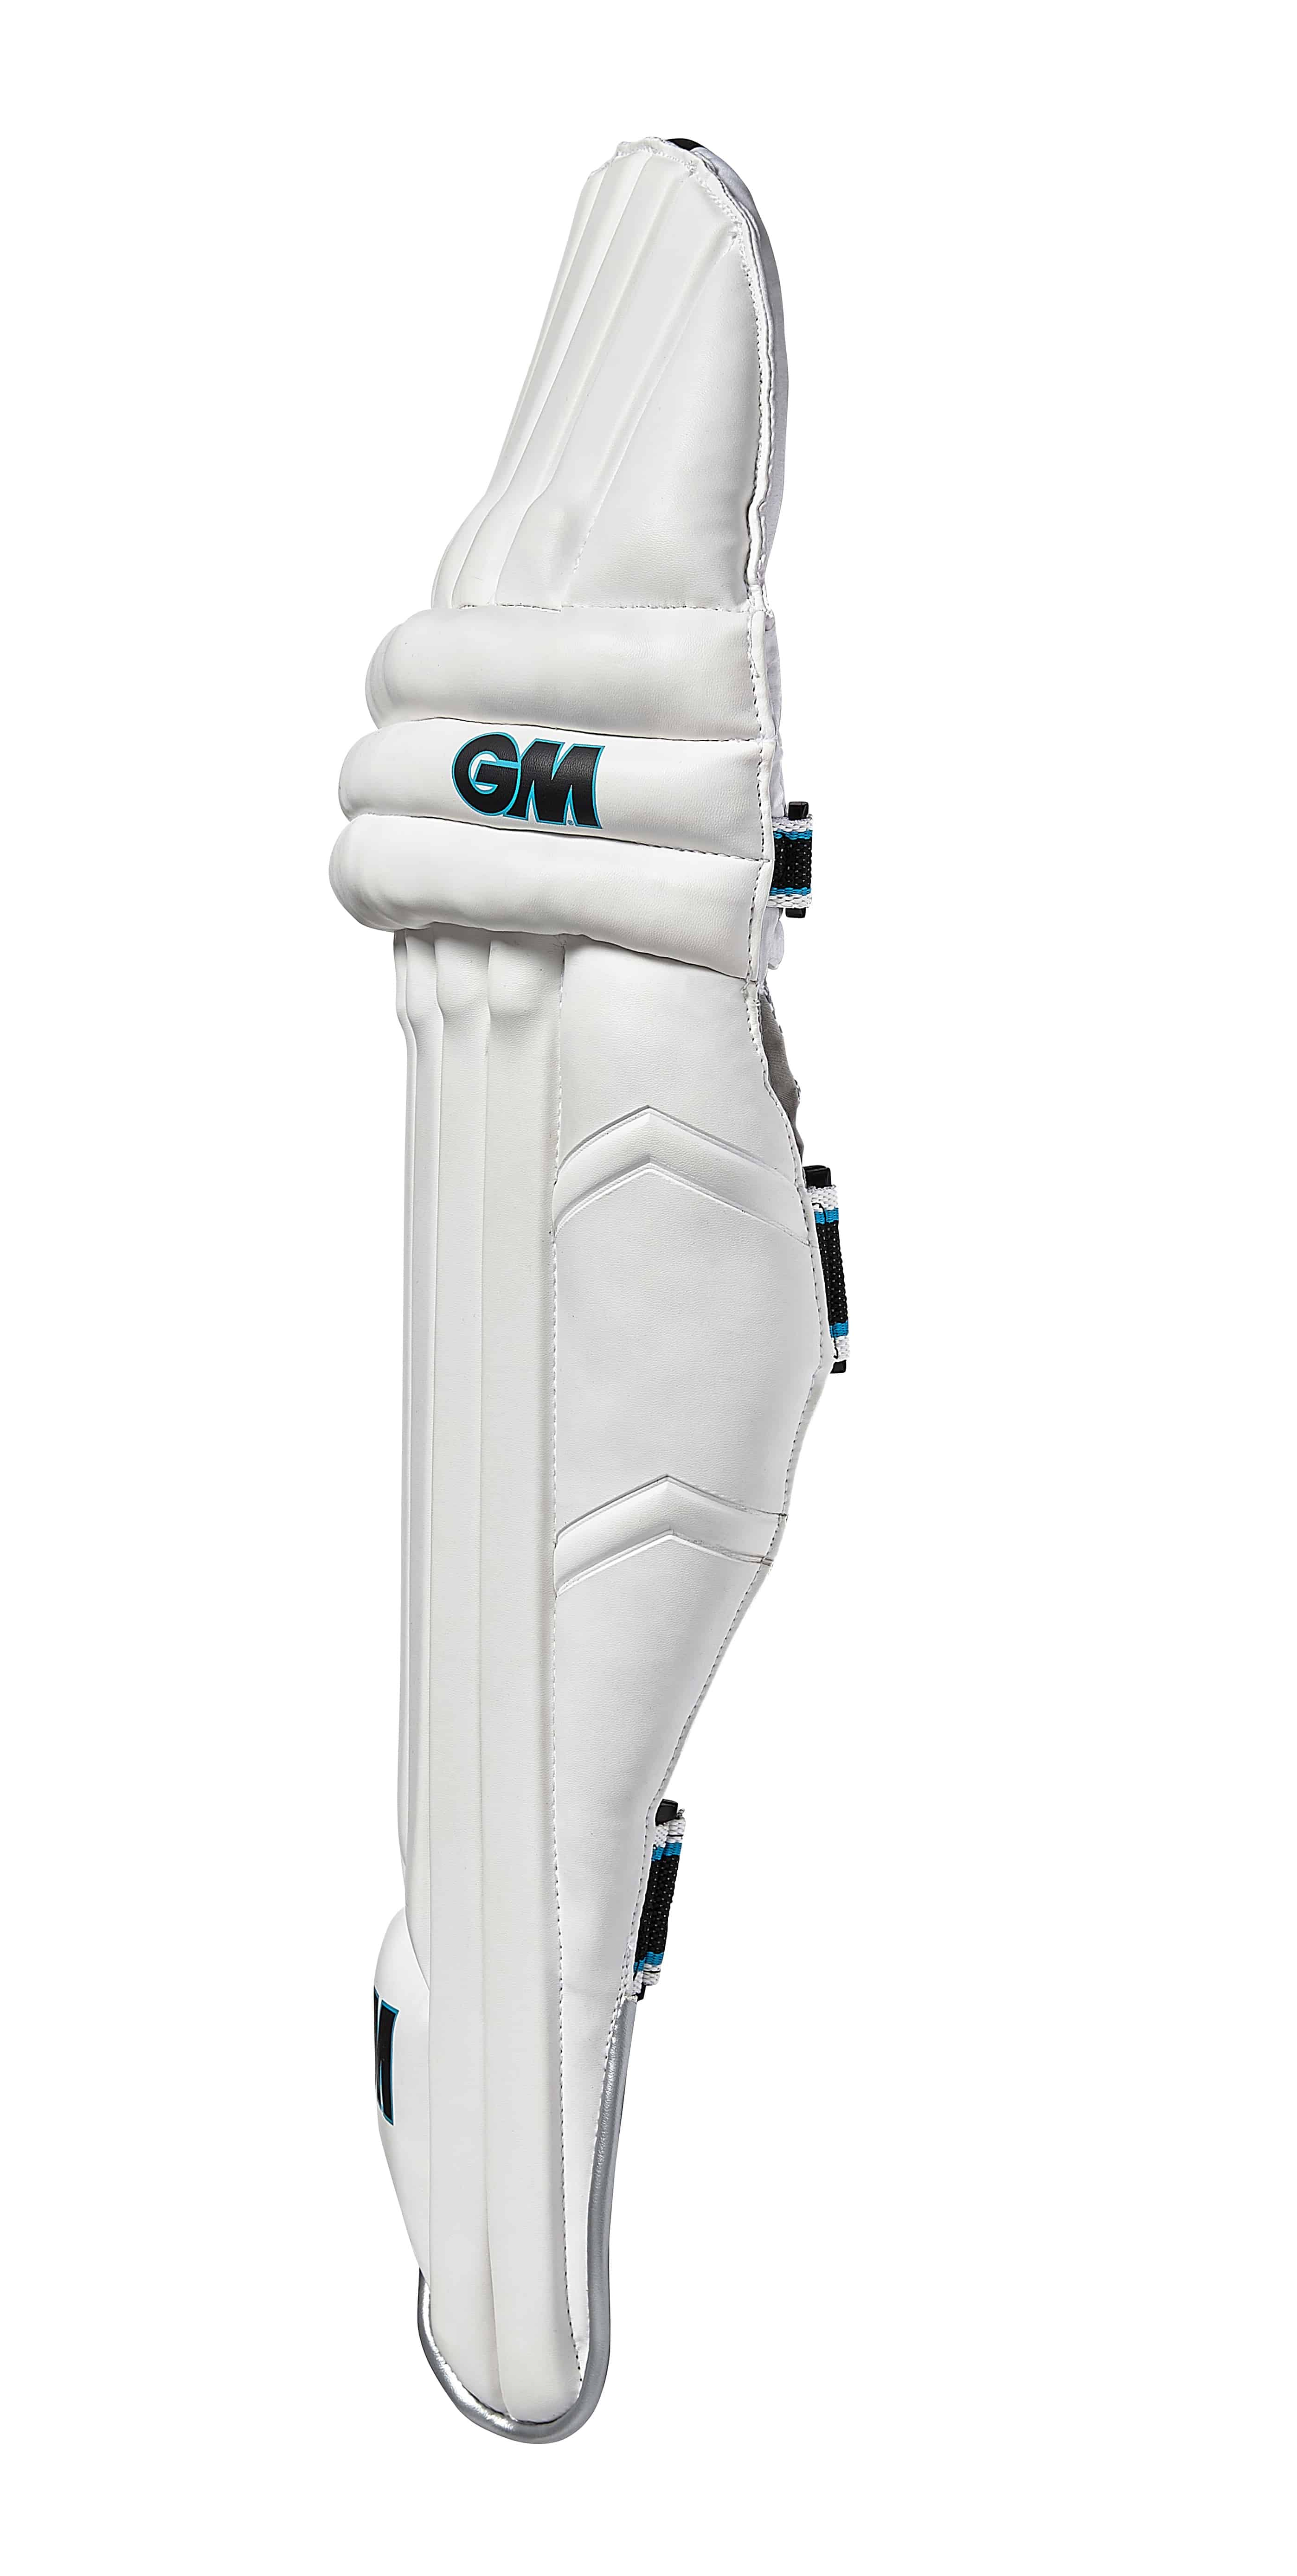 GM Diamond Batting Pads